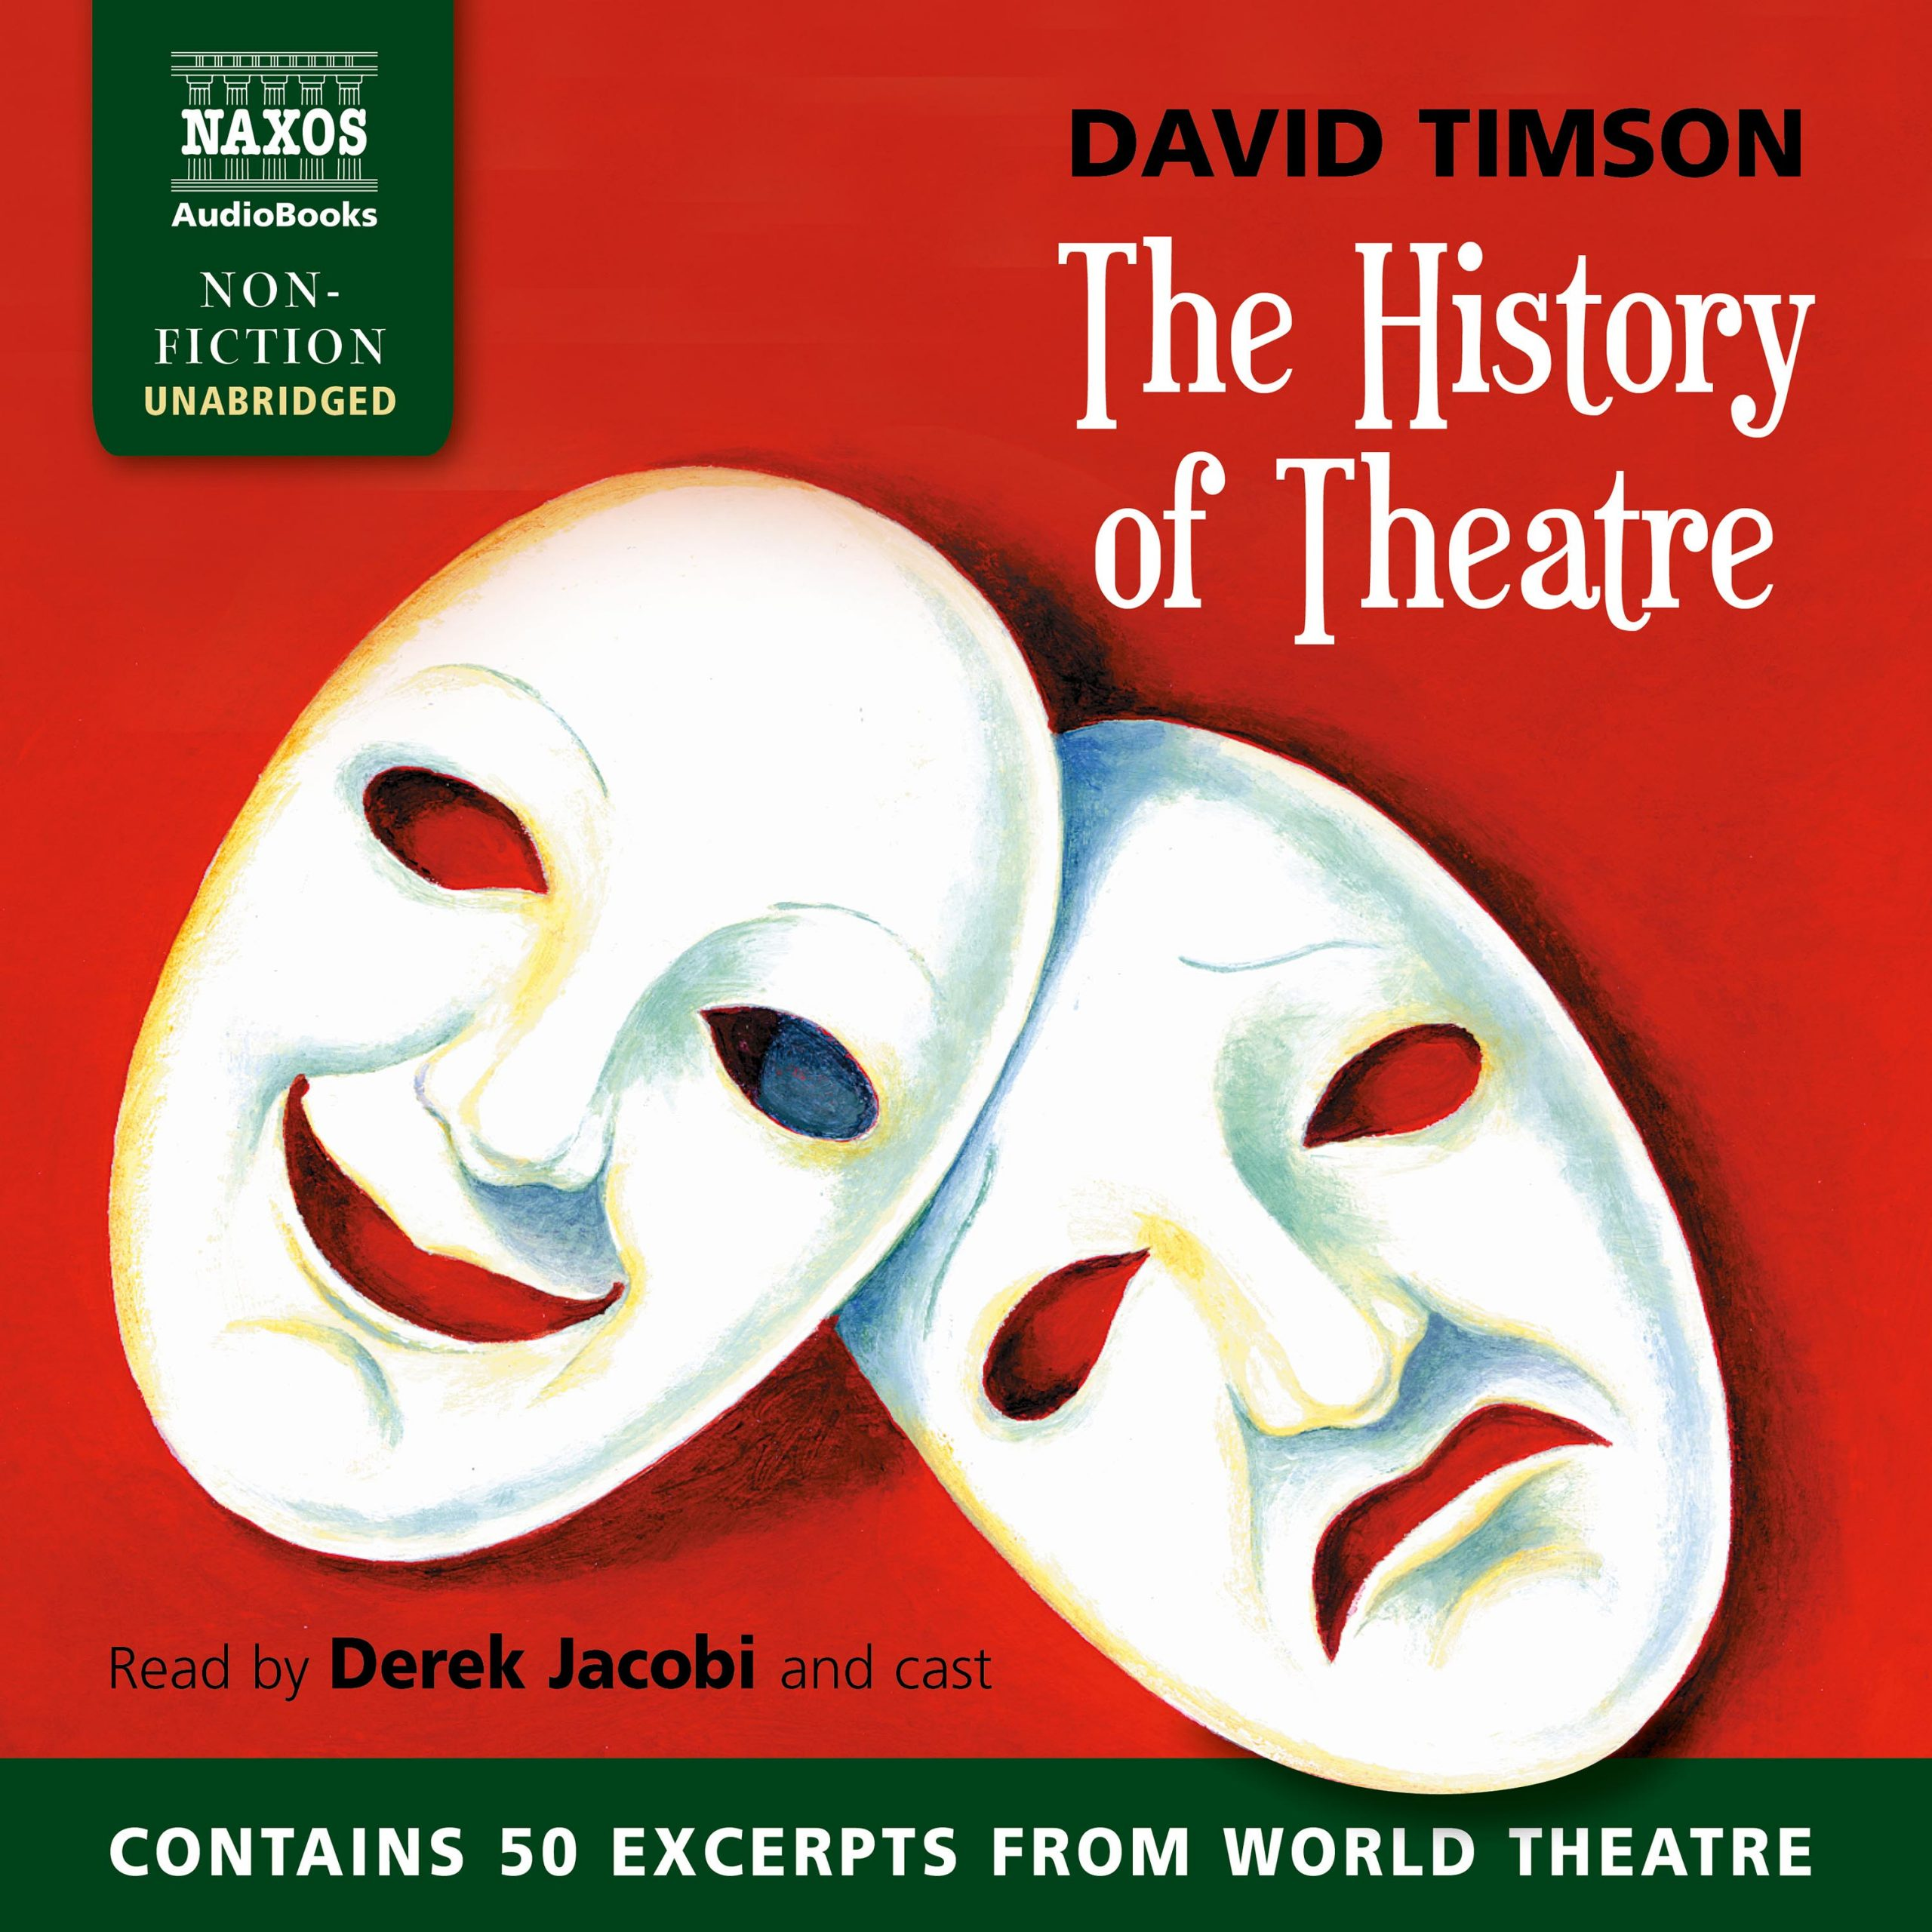 The History of Theatre (unabridged)